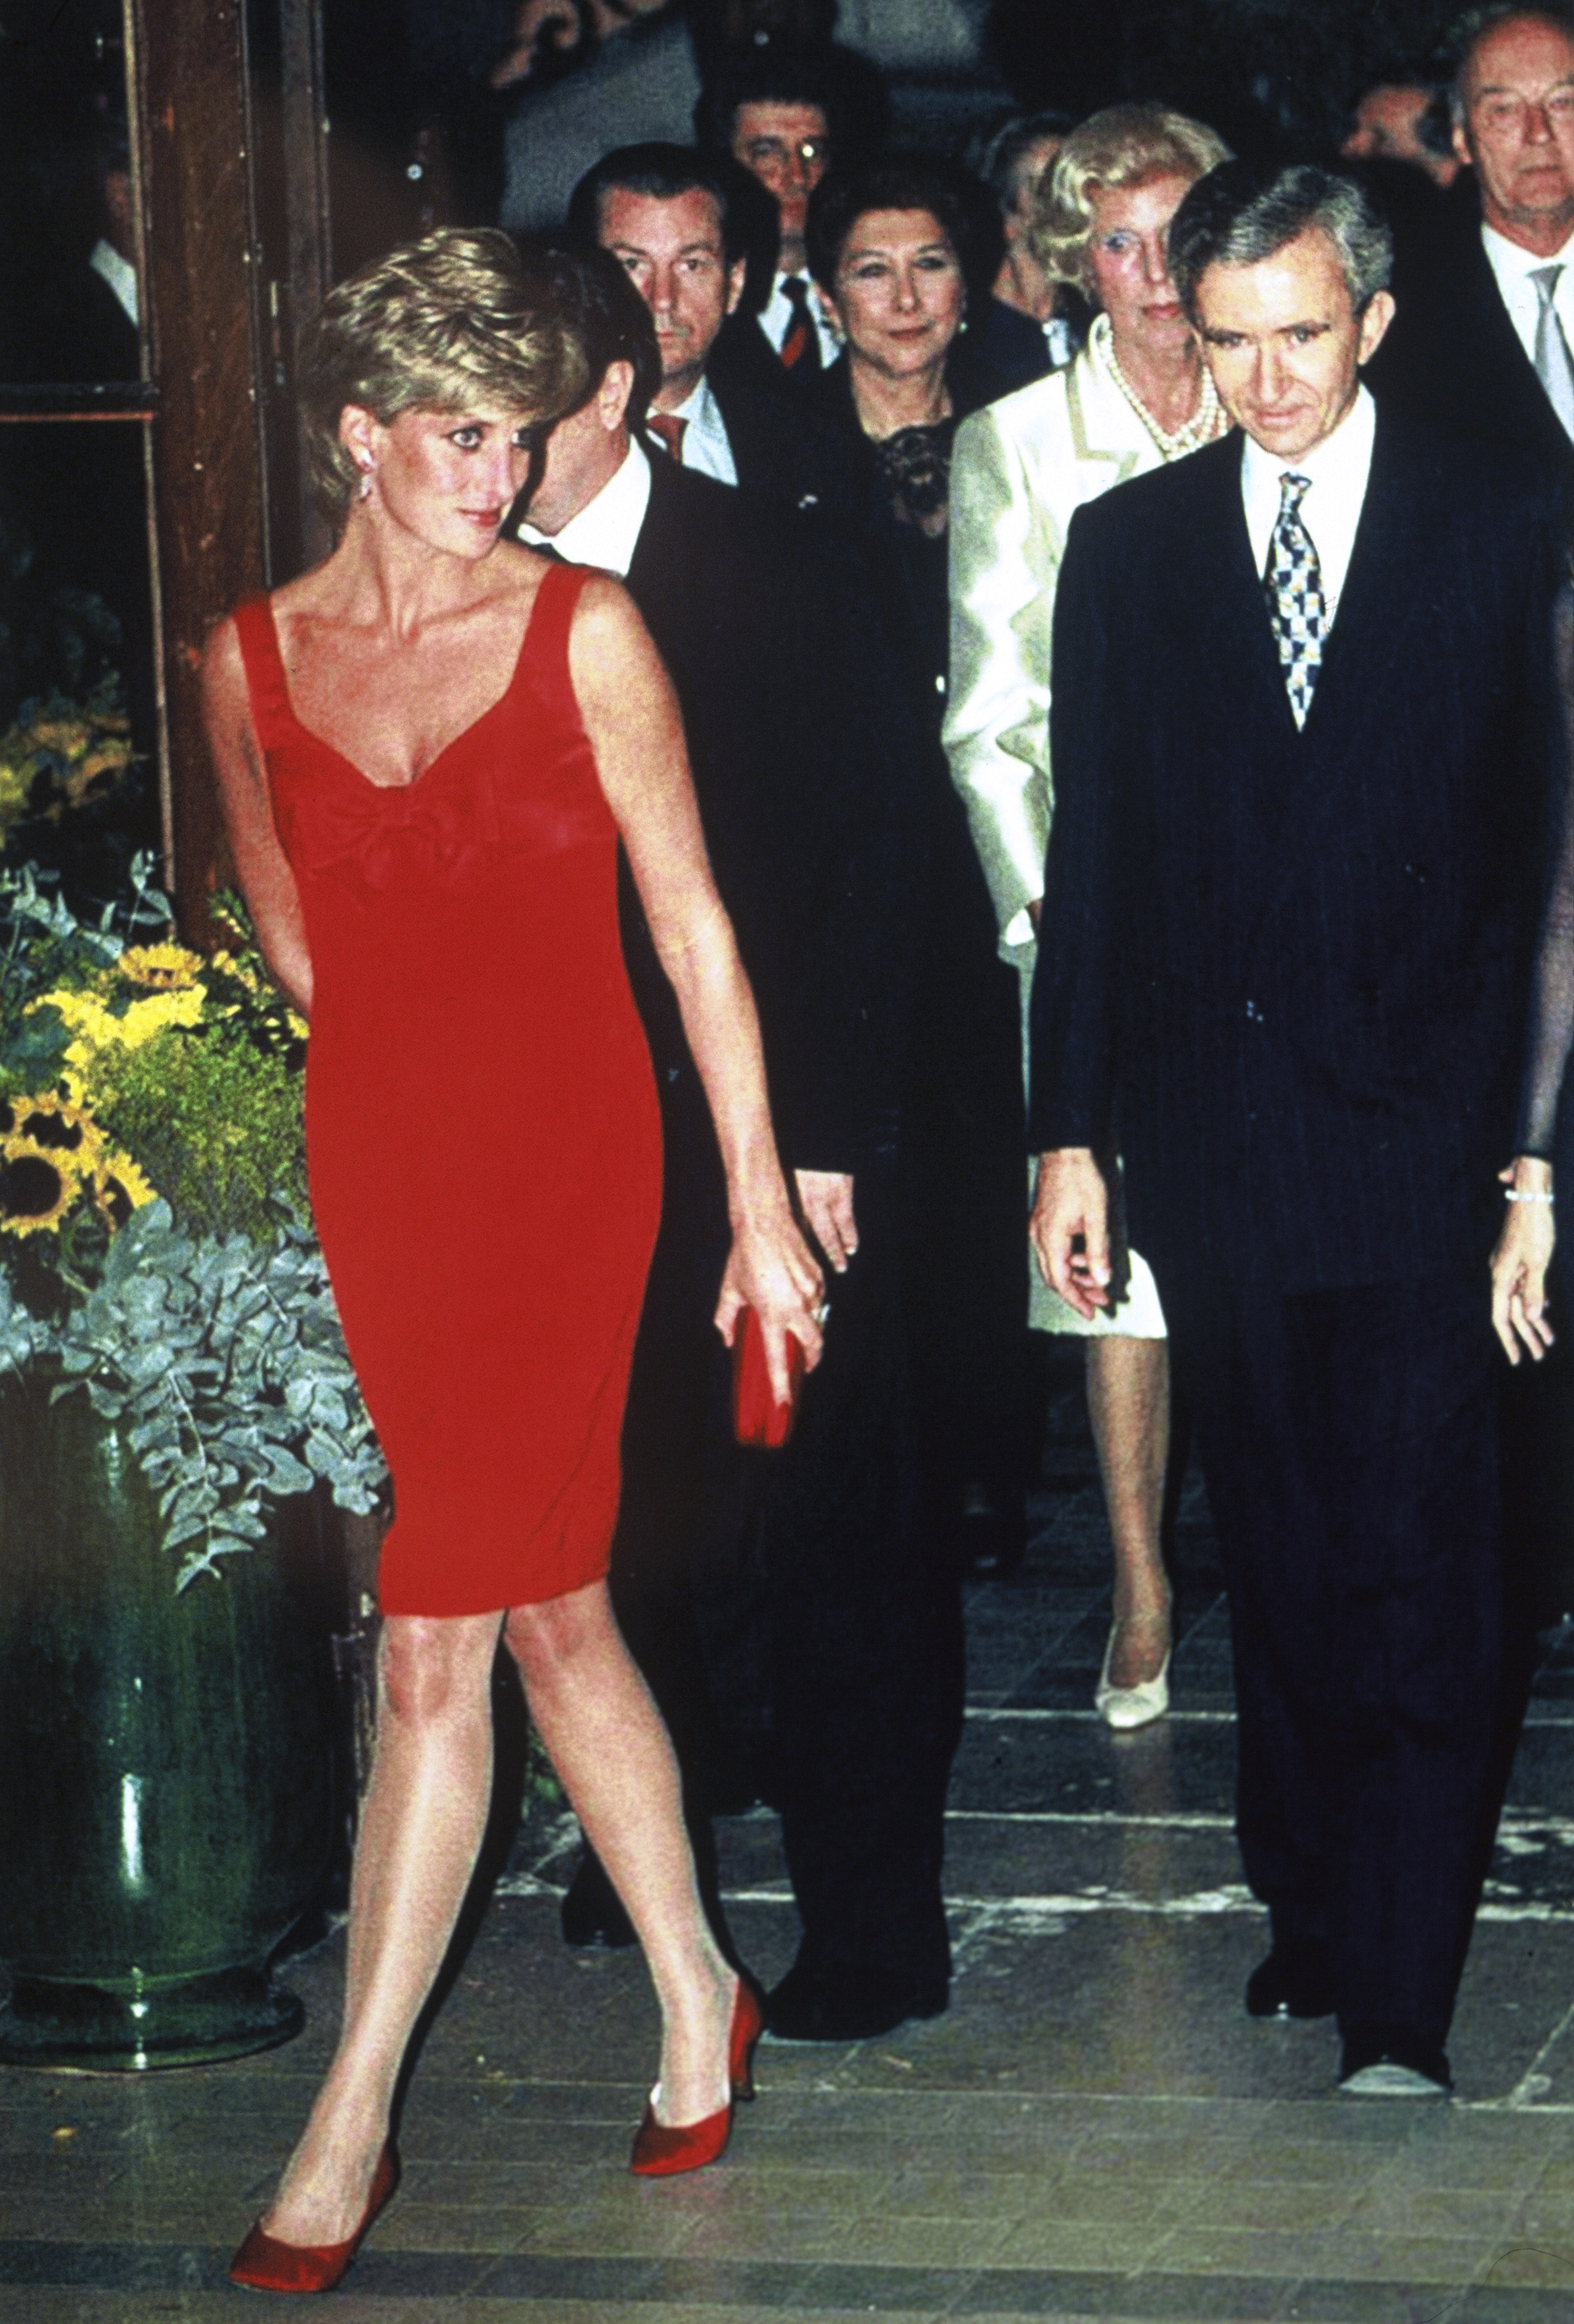 For a dinner in her honor  in 1995 in Paris, Diana selected a dress by Christian Lacroix.